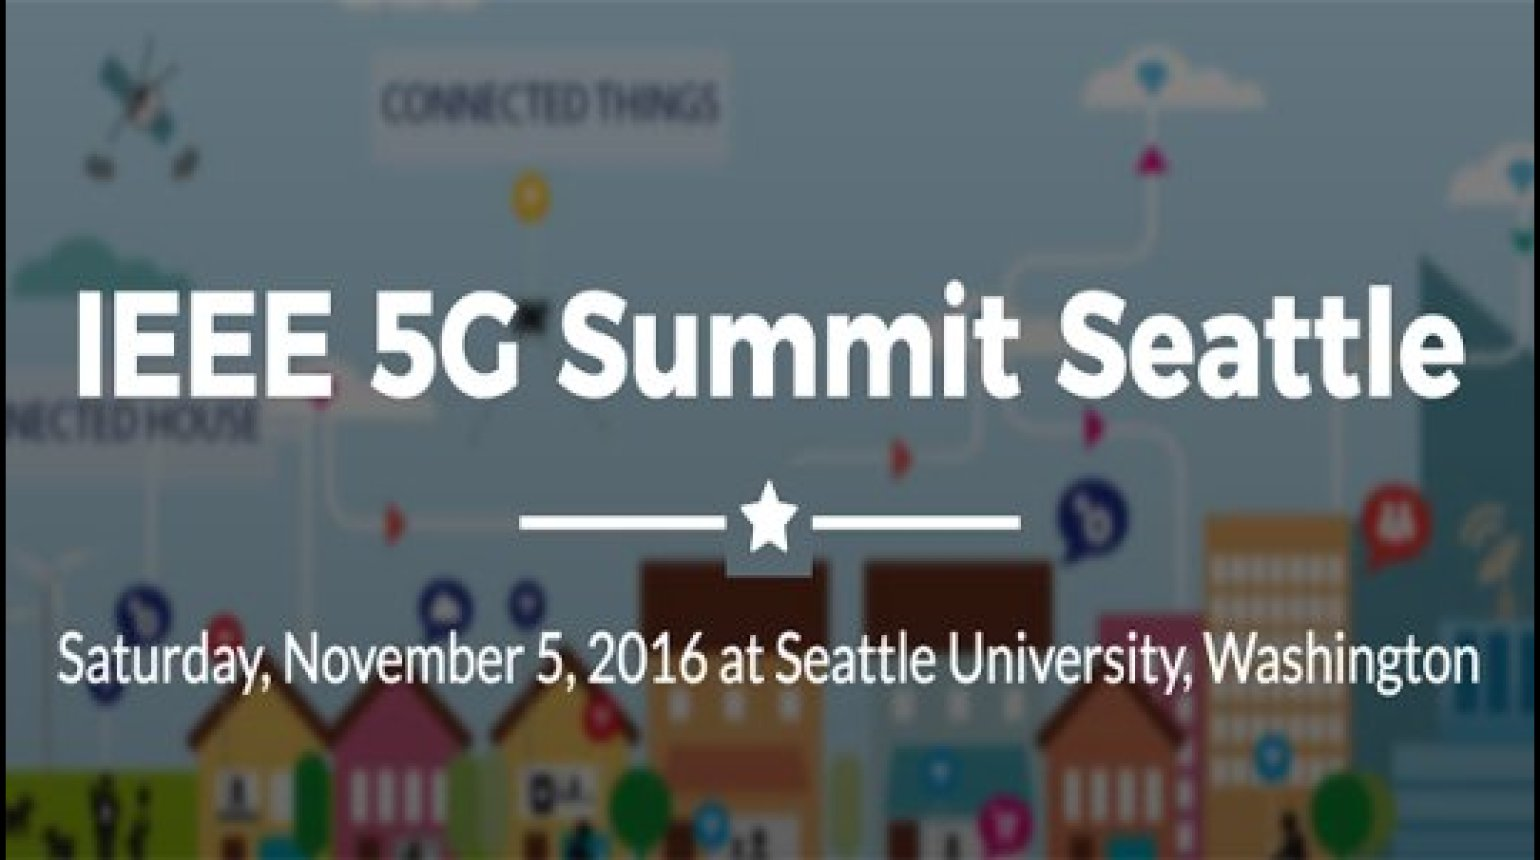 Seattle 5G Summit